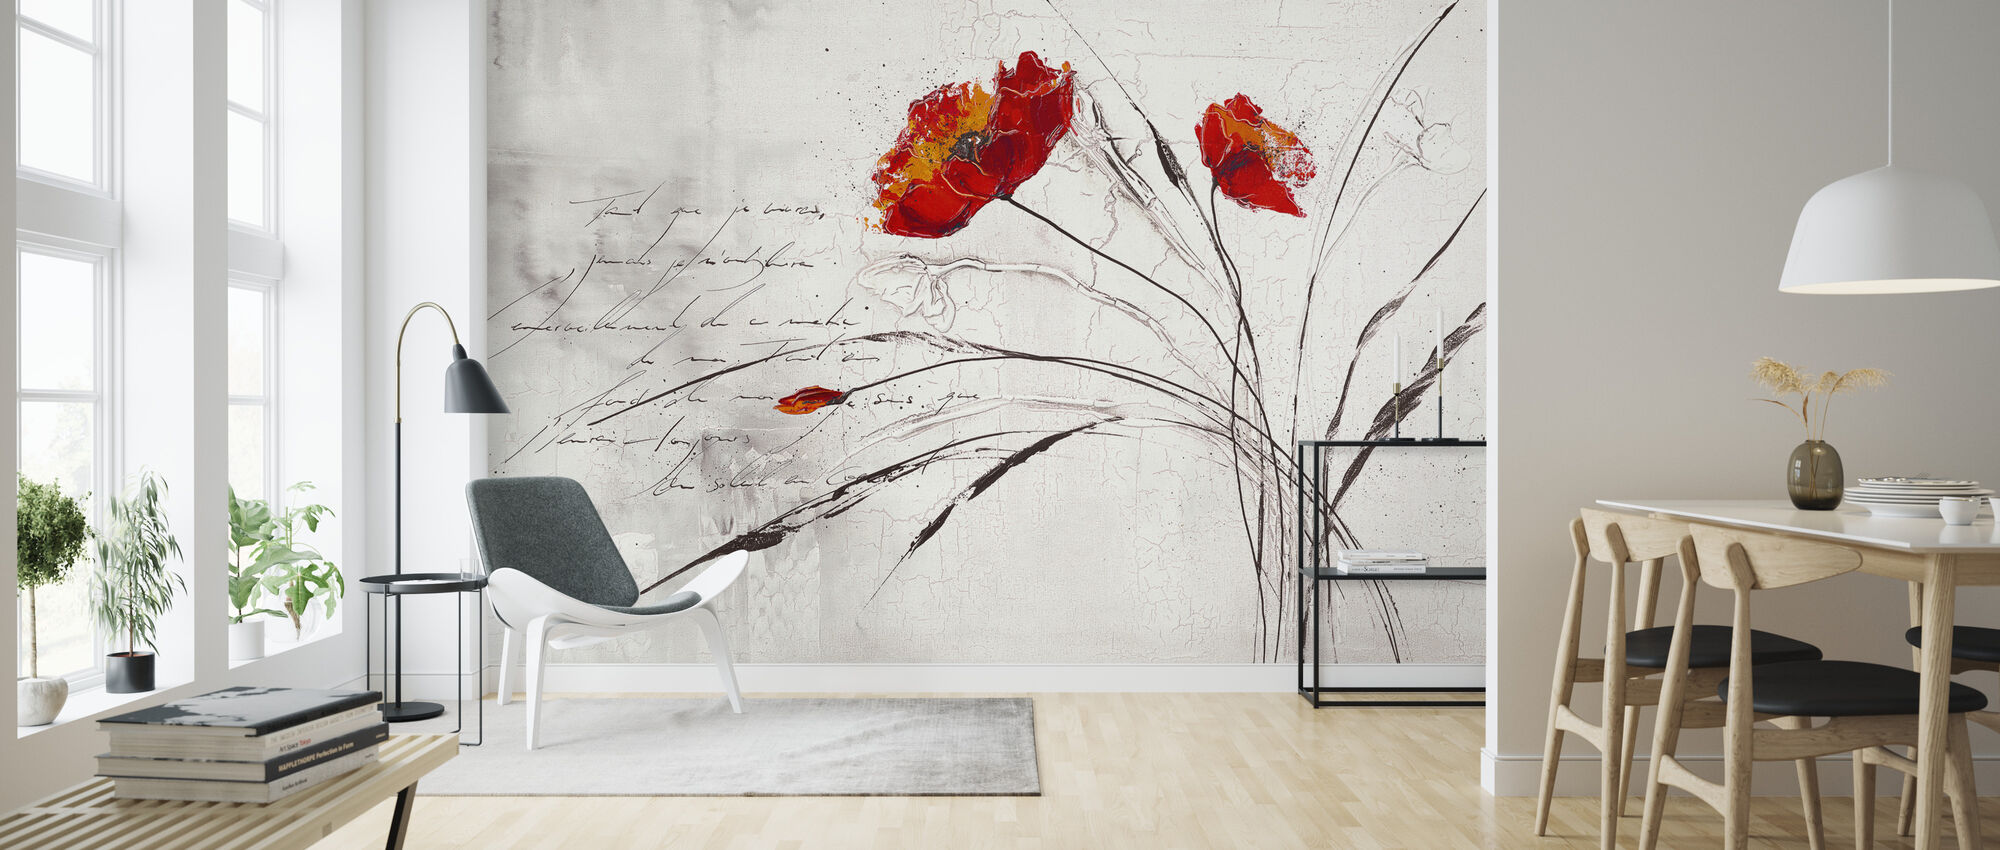 Flowered Dream IV - Wallpaper - Living Room